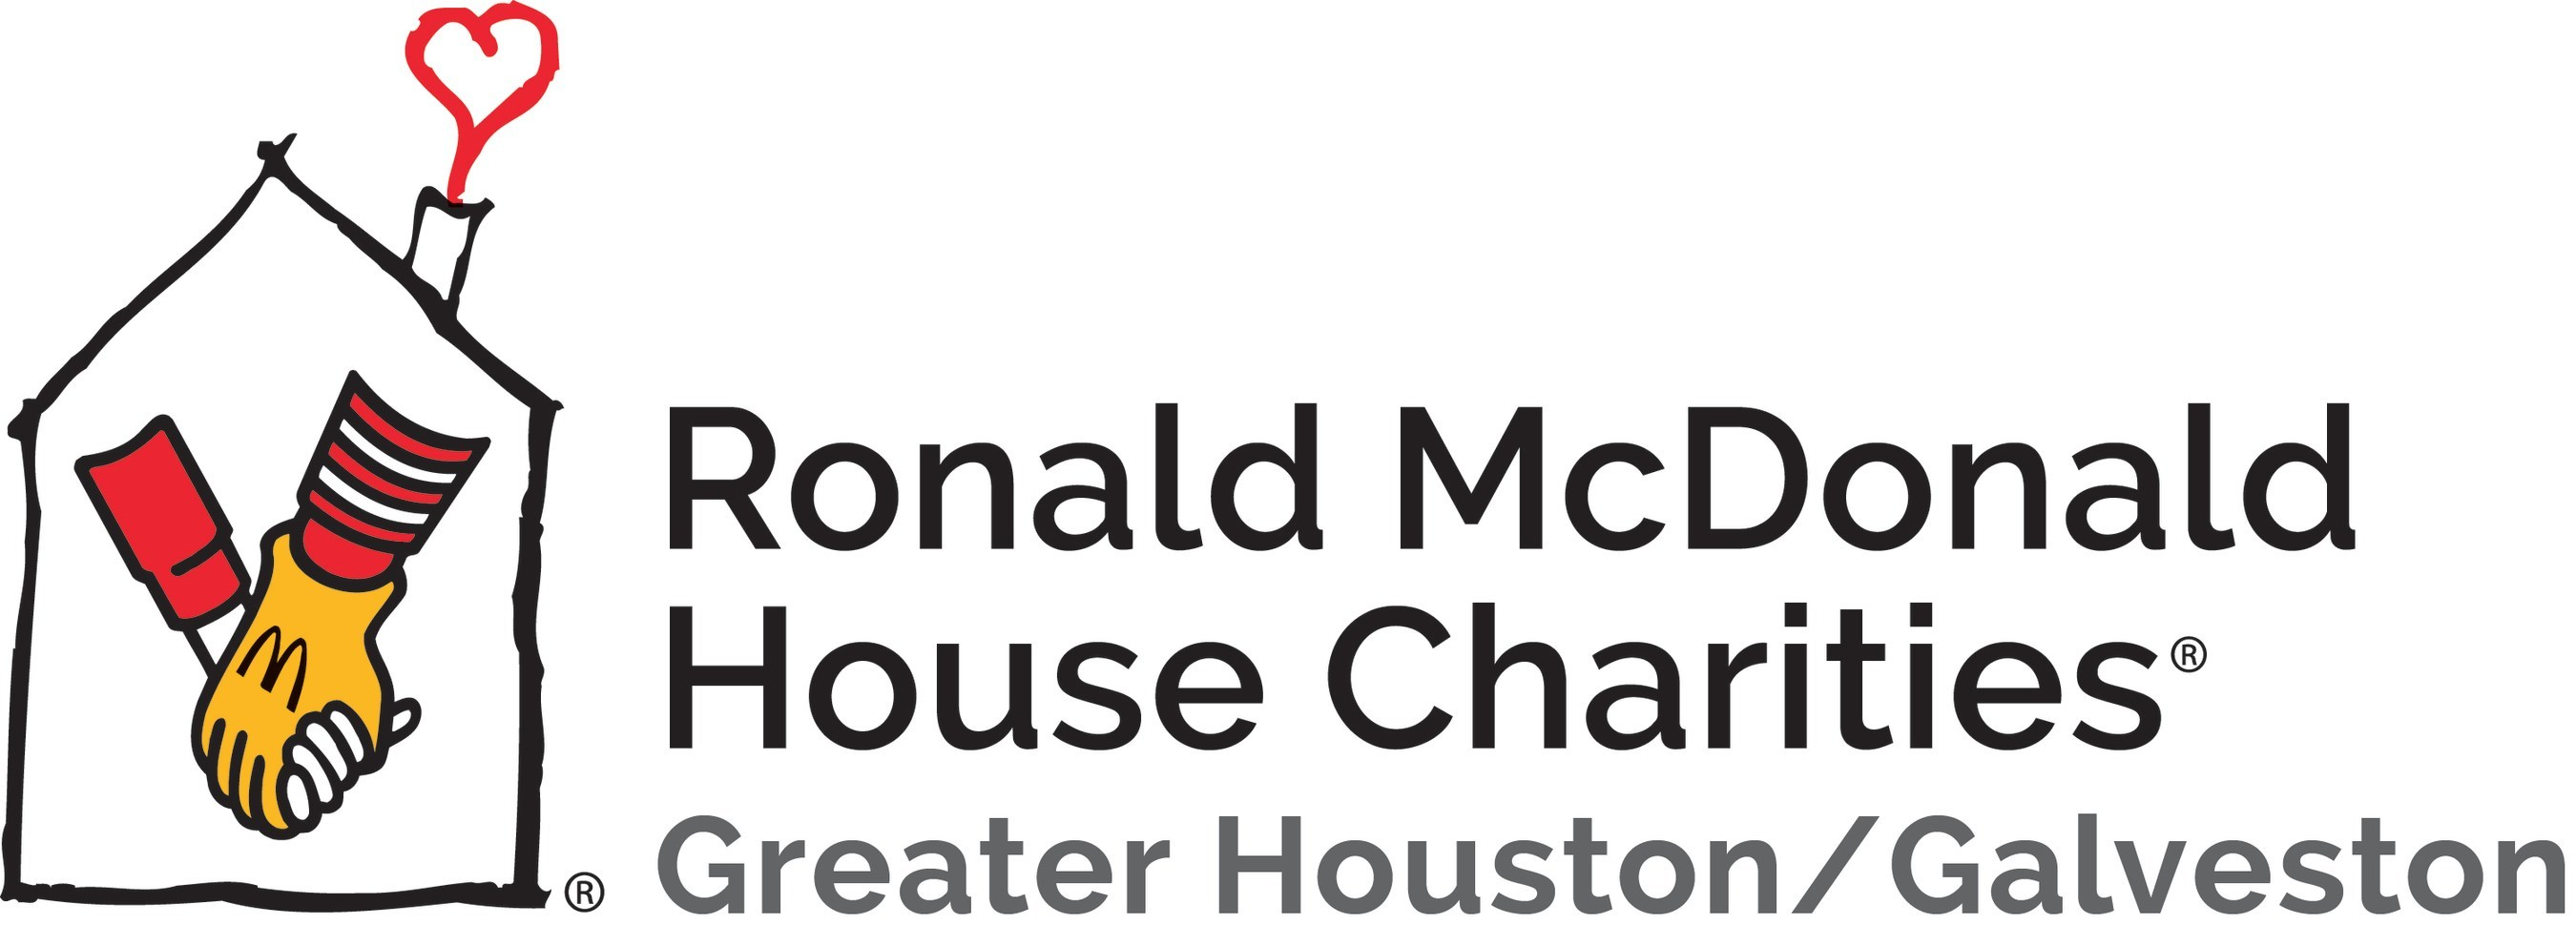 ronald mcdonald house scholarship essay The mcdonald's scholarships 2018 | application guide and requirements the applications are currently been accepted for the mcdonald's scholarships the ronald mcdonald house plus applicant must have one parent of hispanic heritage applicant must submit essay about cultural.